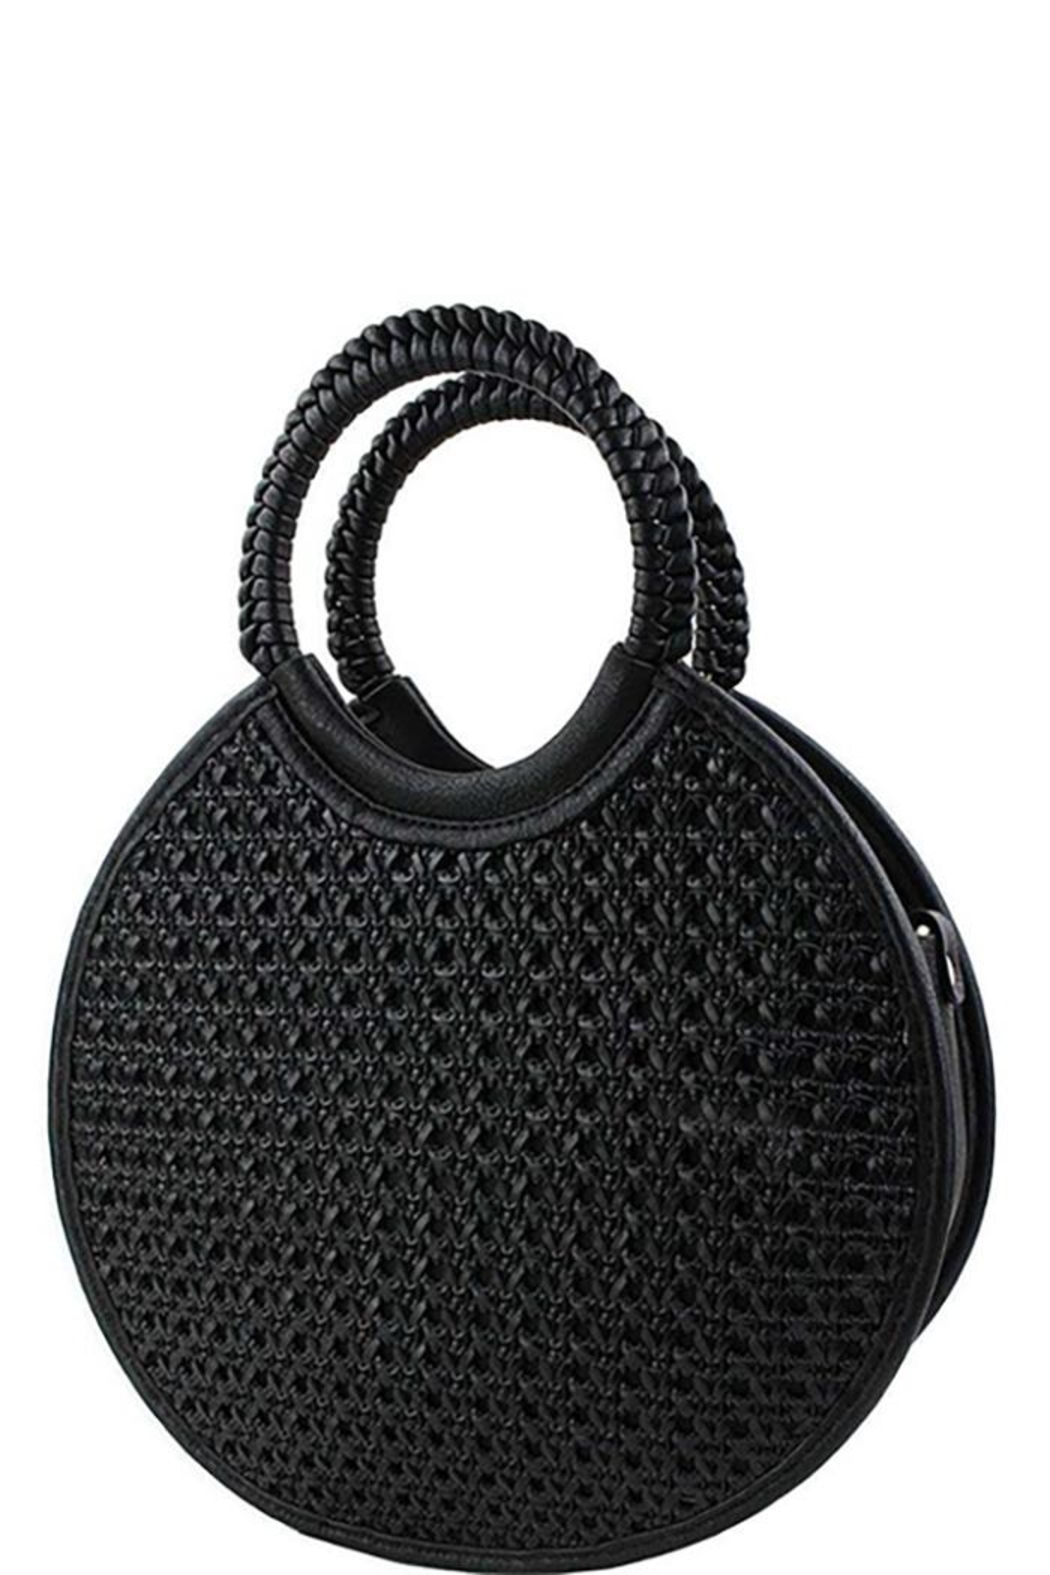 Nadya's Closet Designer Chic-Woven Round-Satchel - Front Cropped Image